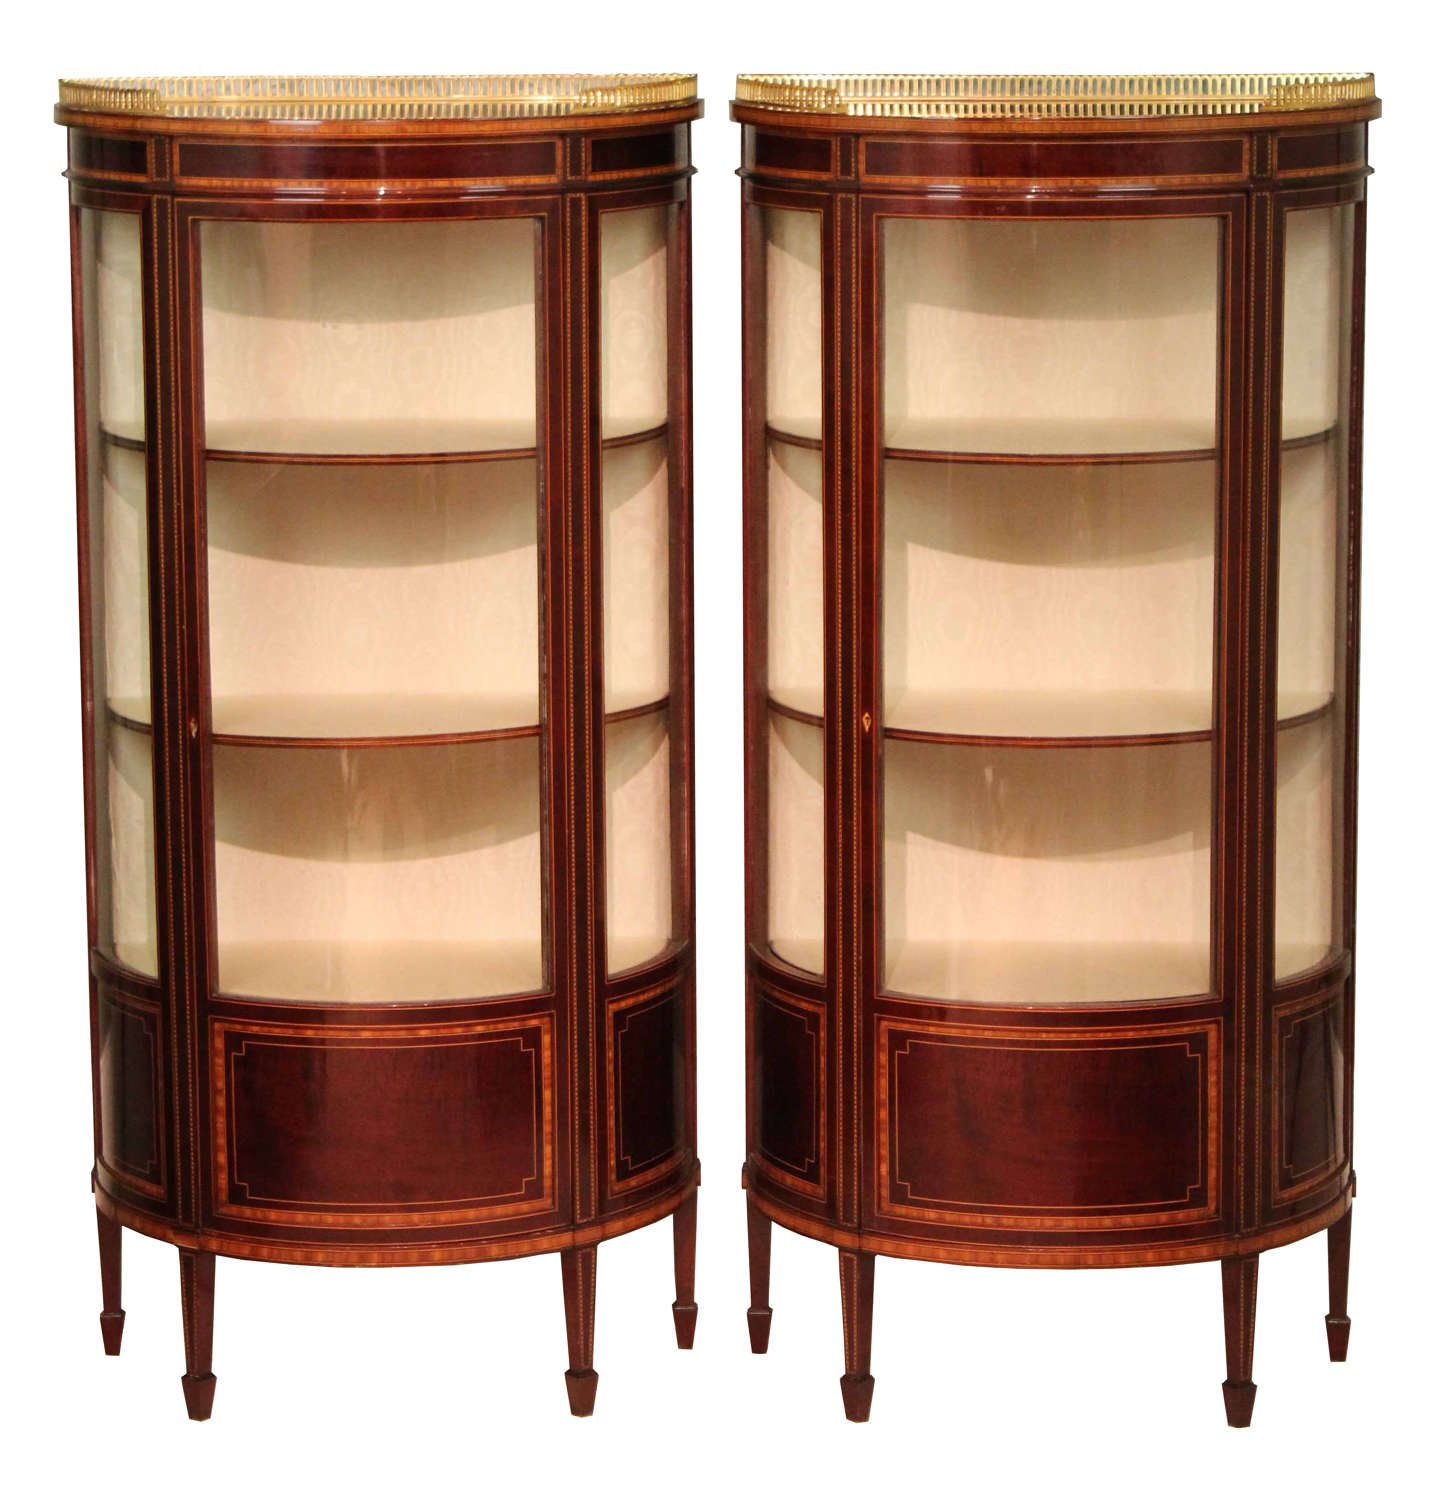 A Pair of Edwardian Inlaid Bow-front Glazed Display Cabinets